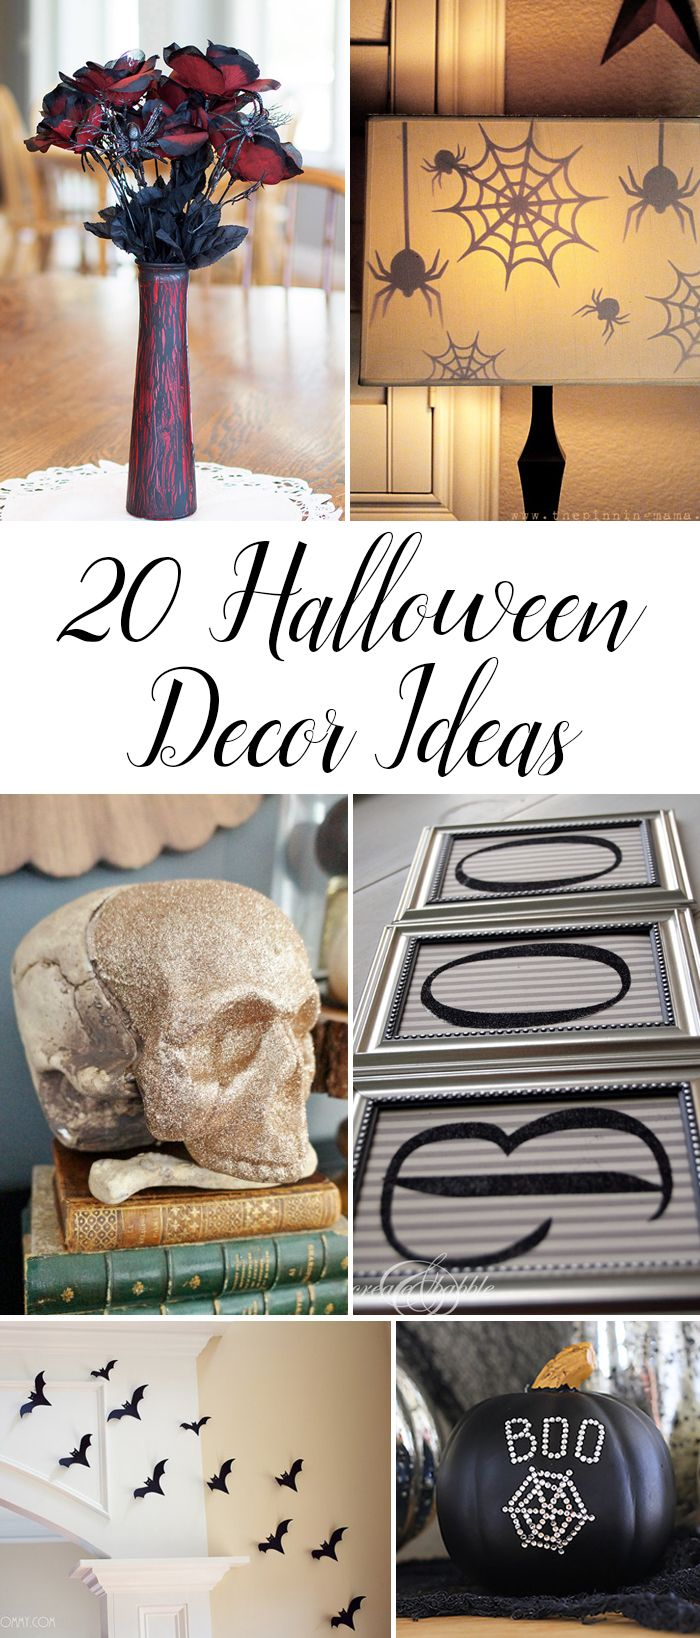 Top 20 DIY Halloween Decor Ideas Pinterest DIY Halloween - Halloween Decoration Ideas Pinterest